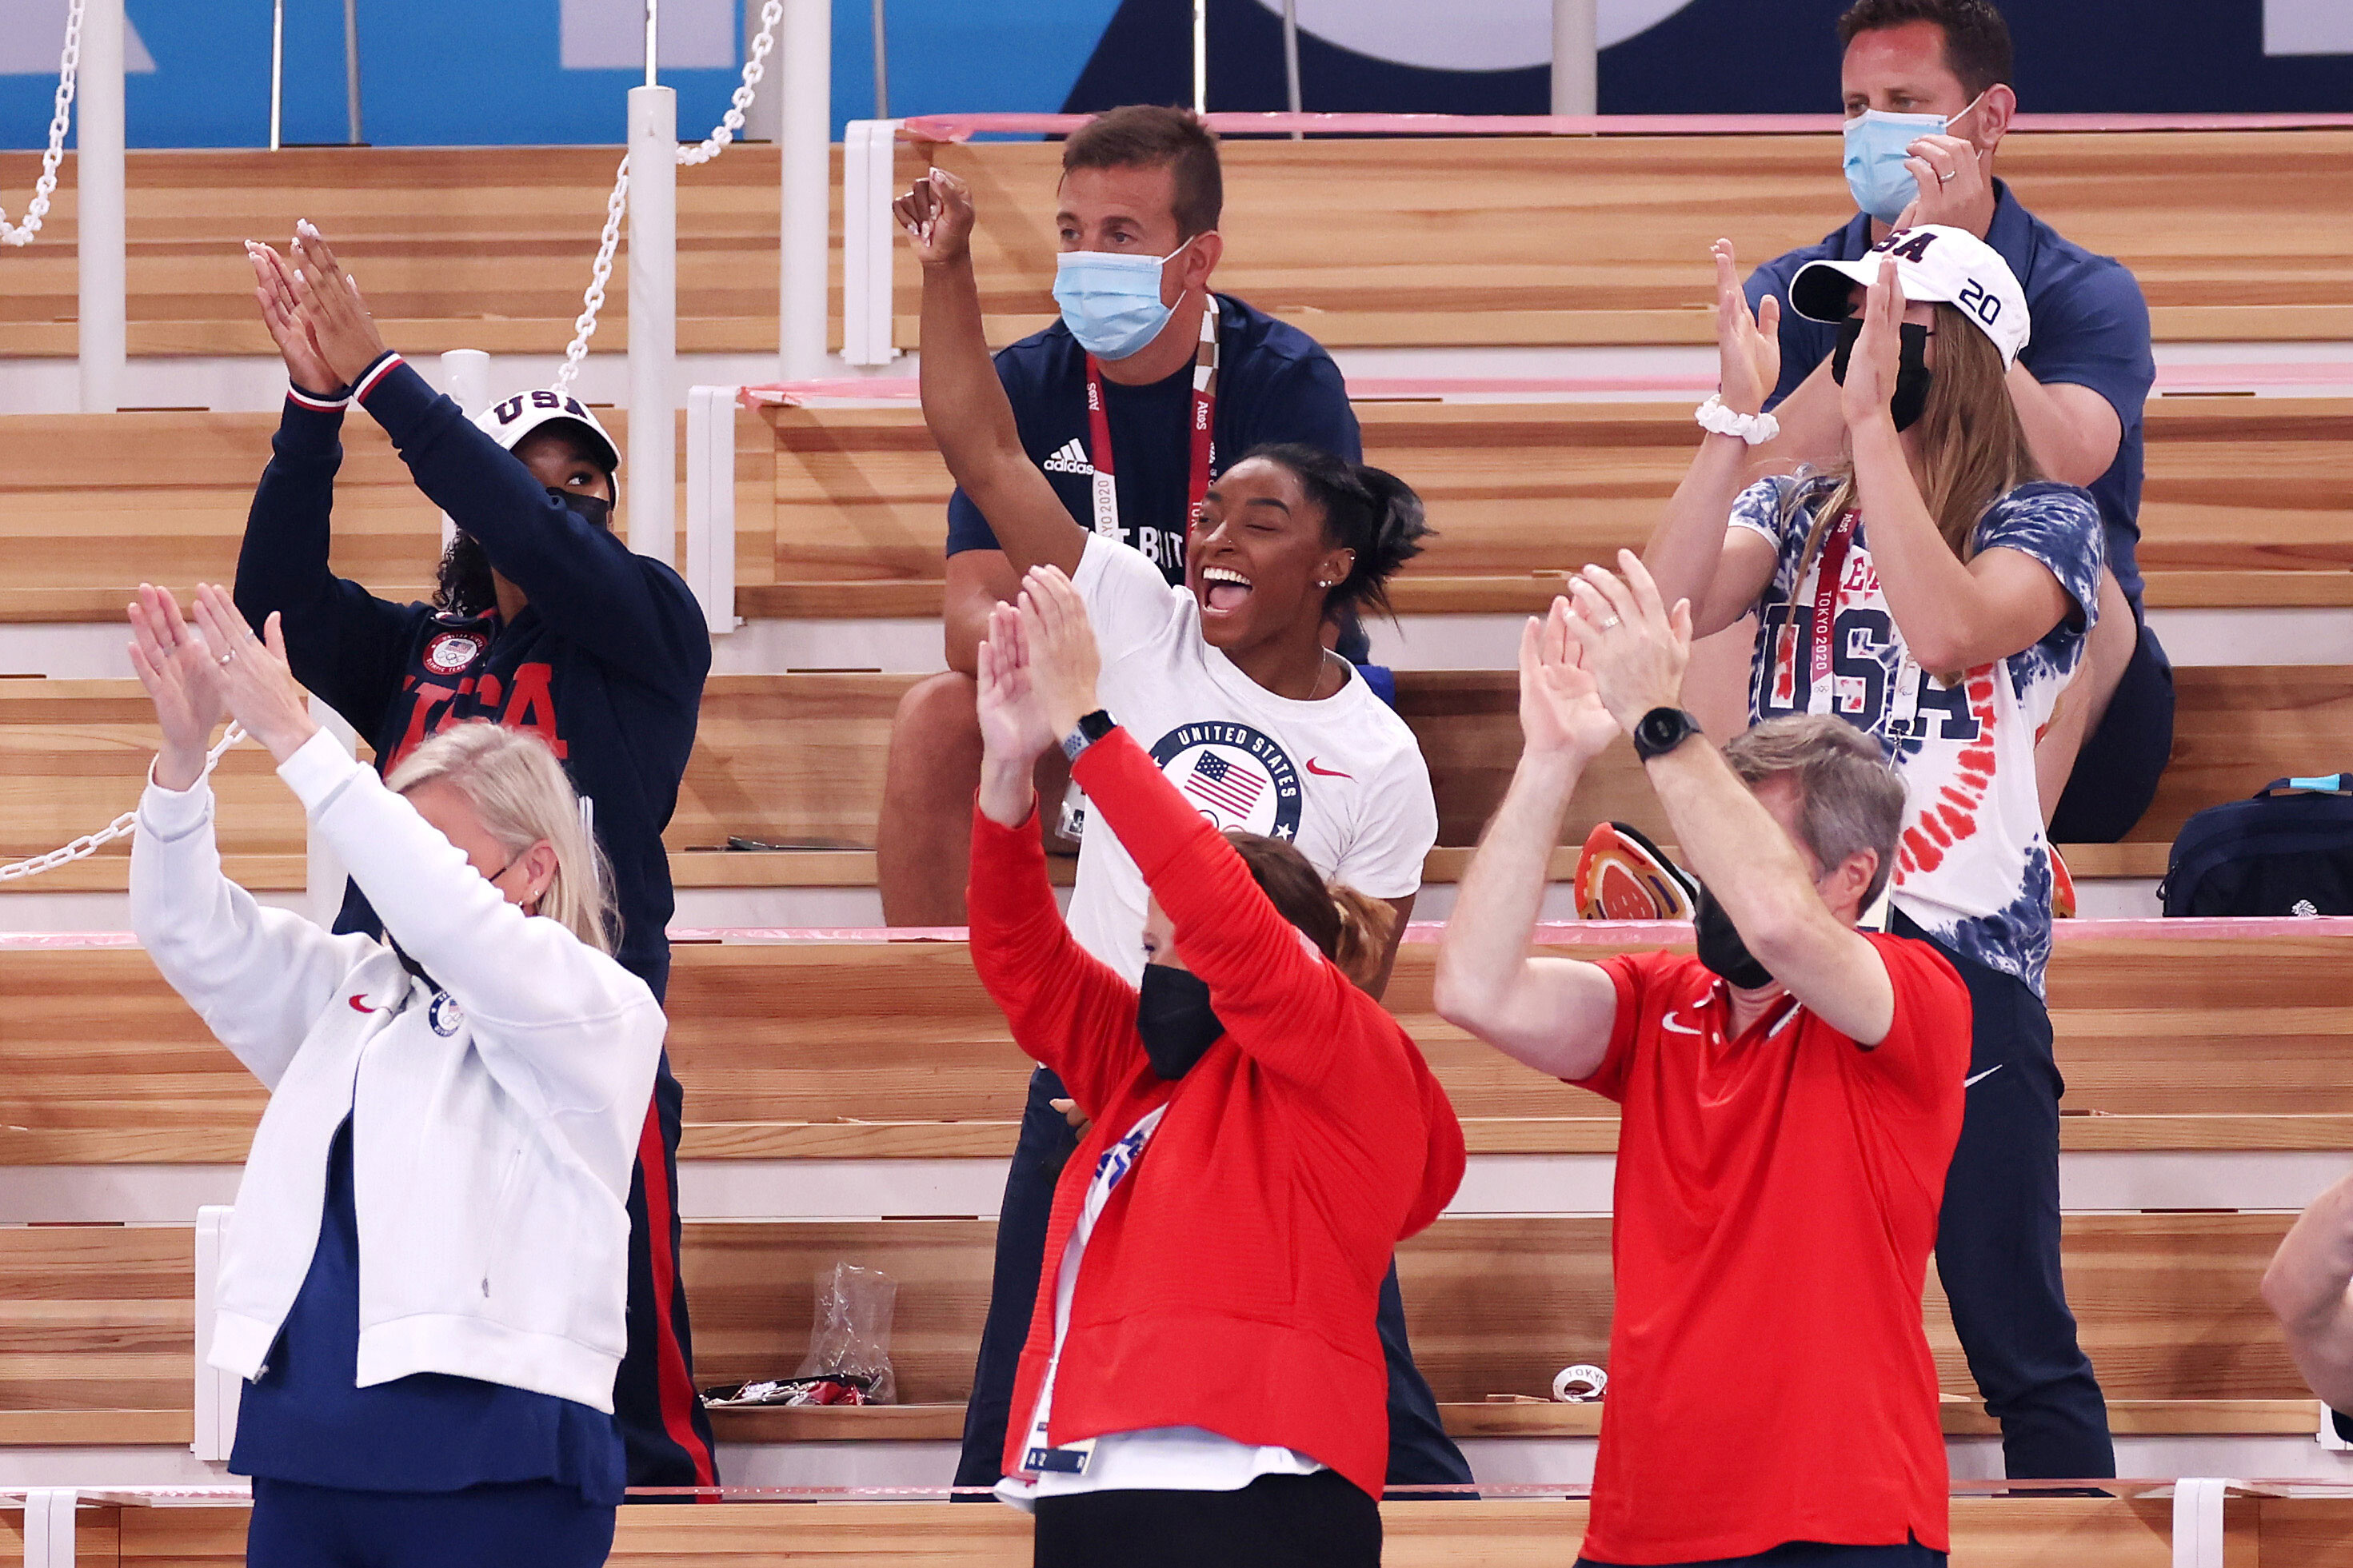 Simone Biles: US gymnast to take part in Tuesday's balance beam final at Tokyo 2020